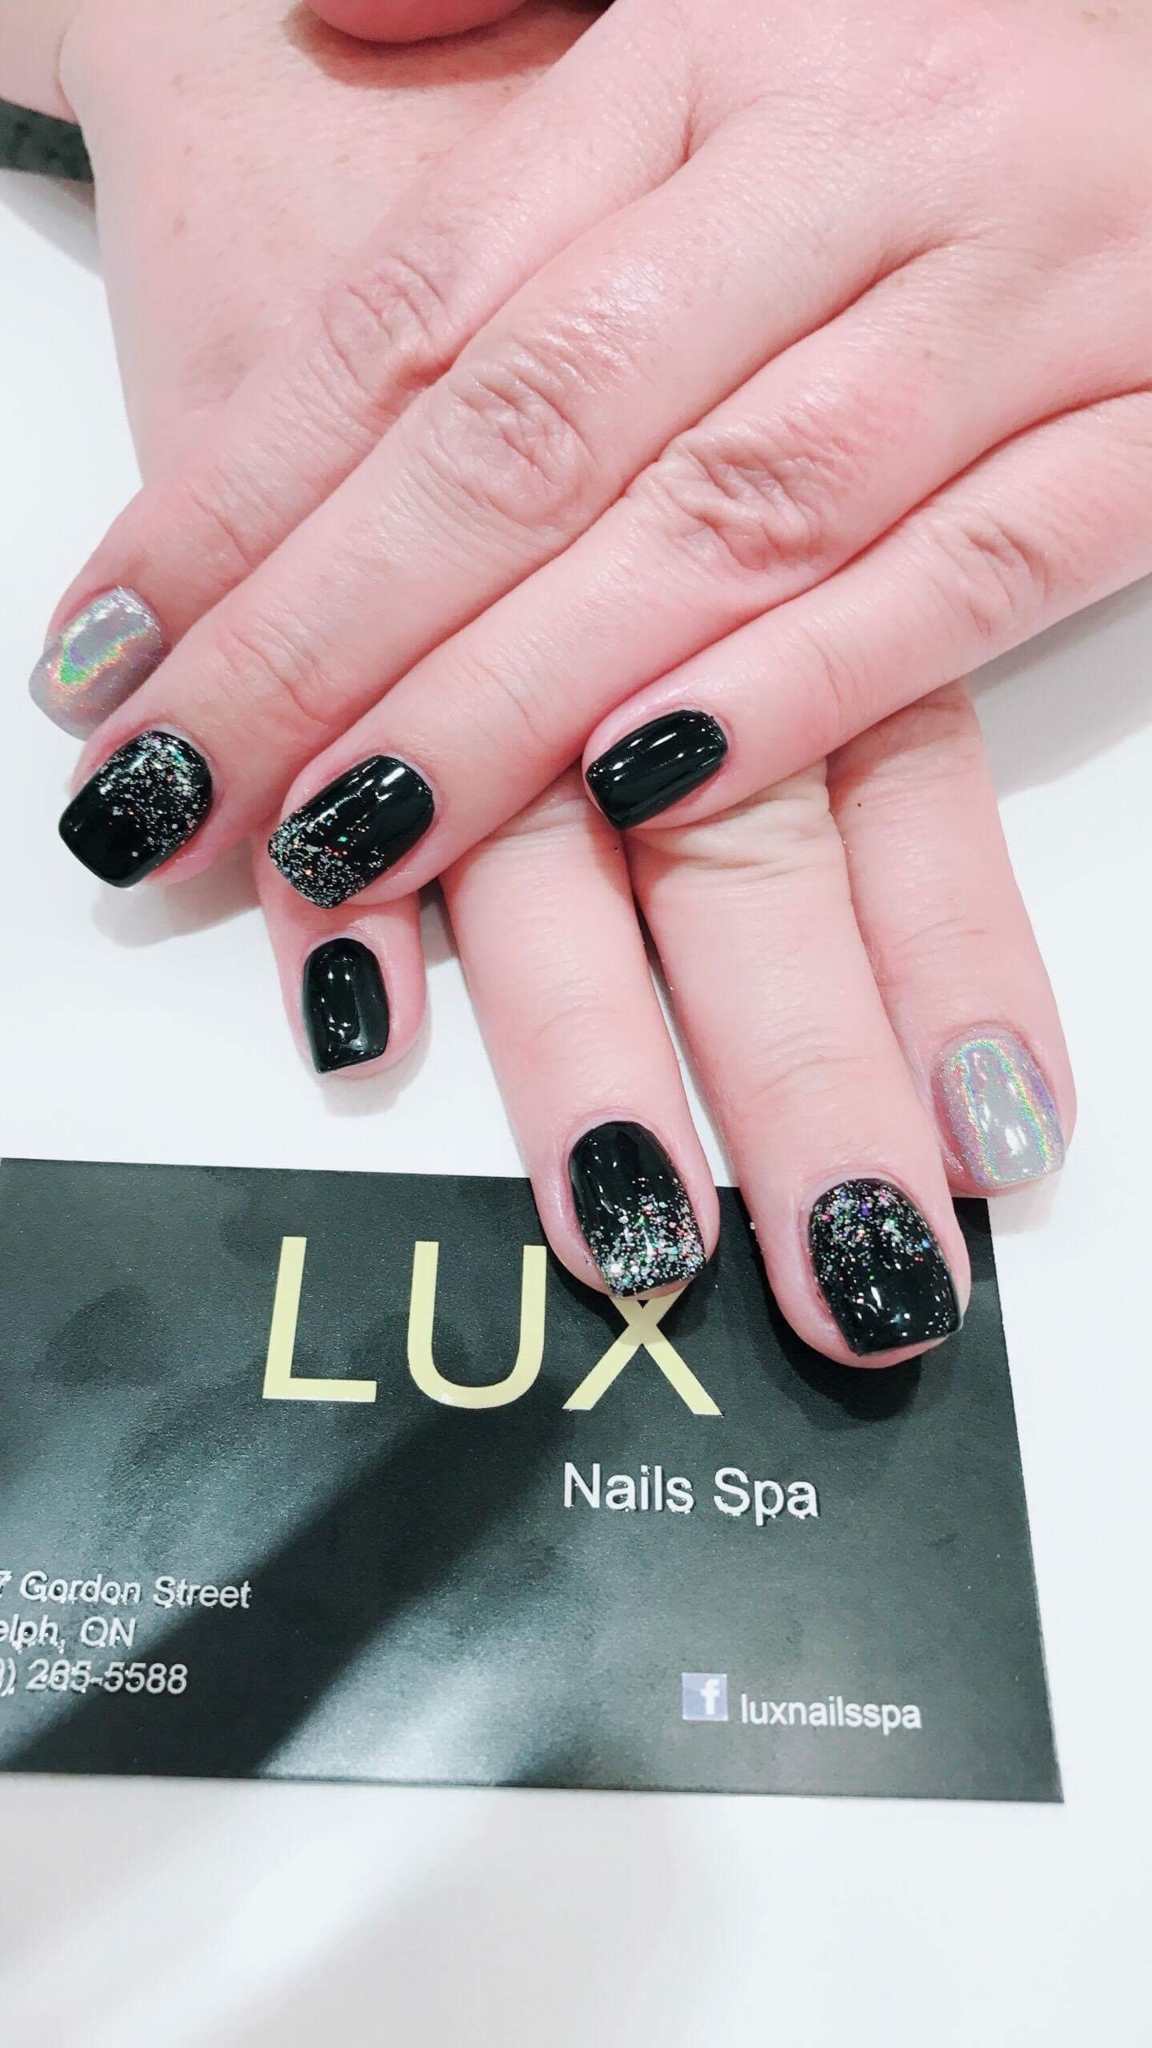 lux nails